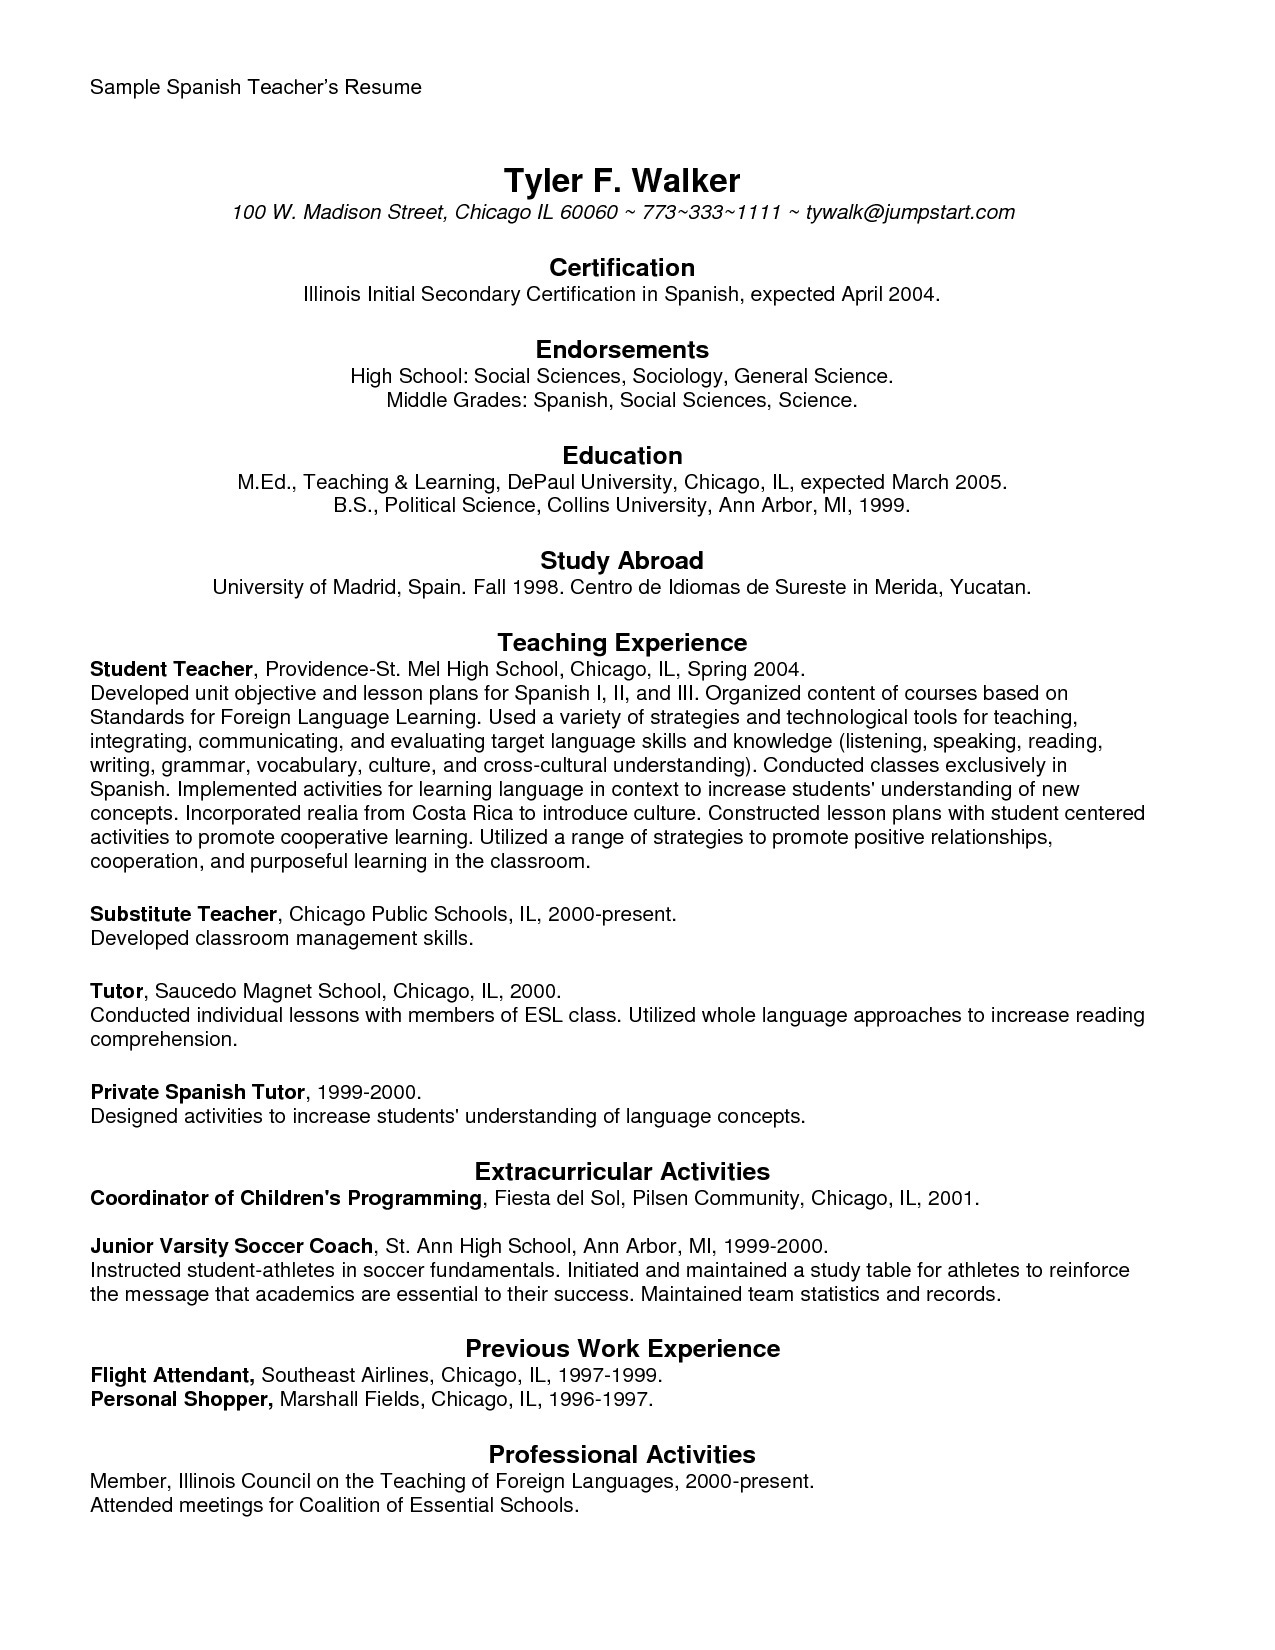 resume templates in spanish resume resumetemplates spanish templates - Resume Template In Spanish